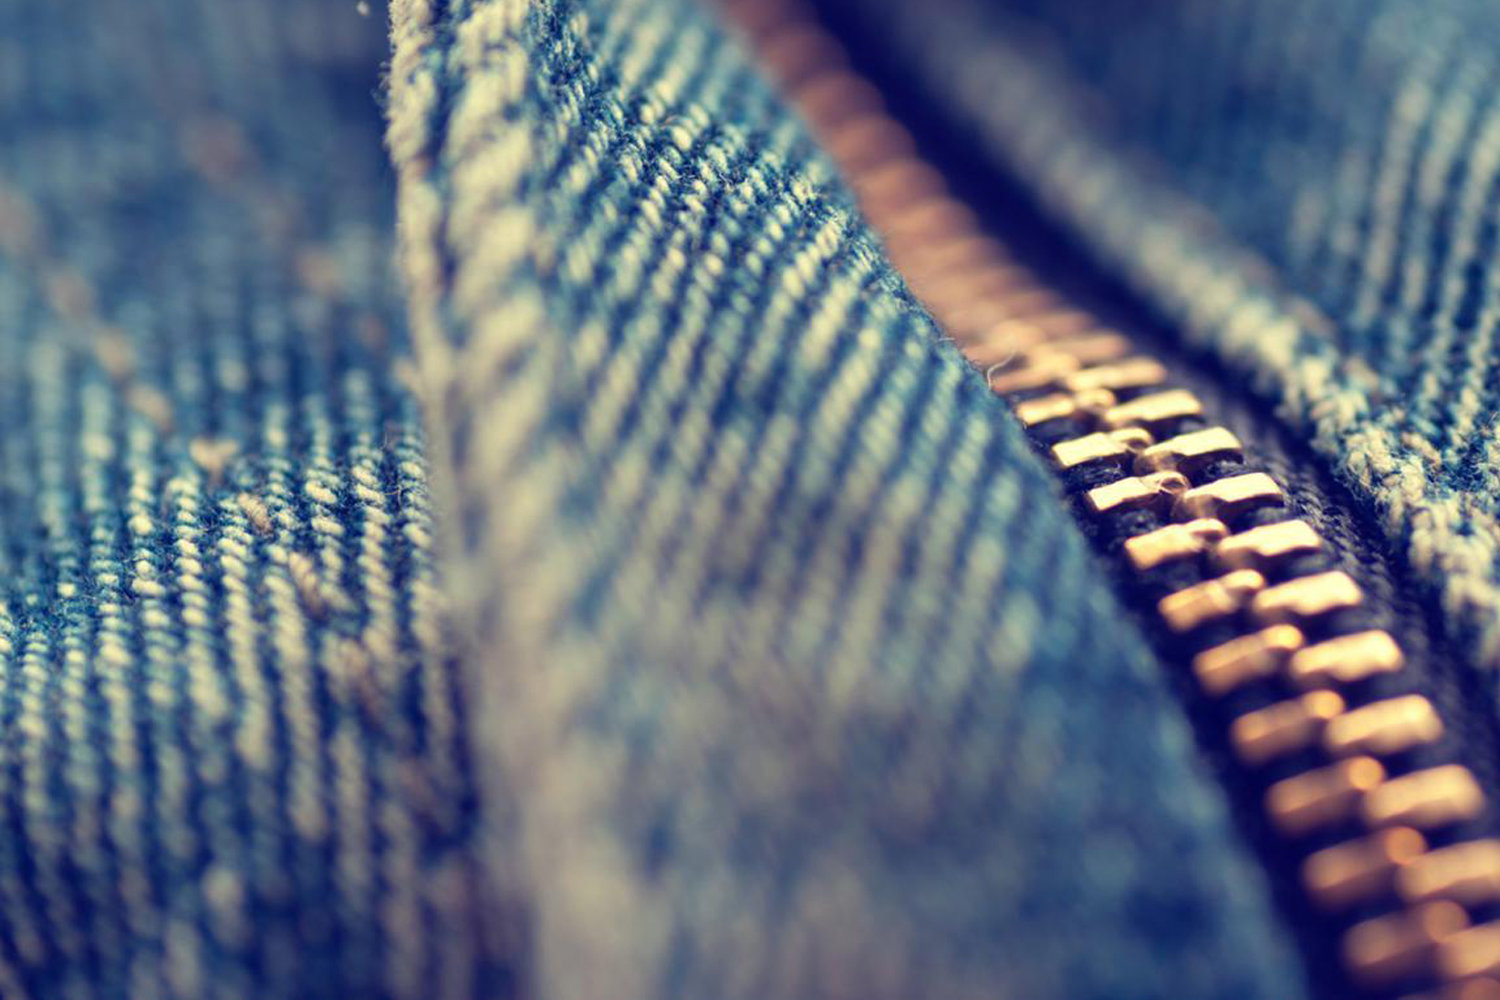 photograph of jeans close up - Myer and Sons vintage denim apparel